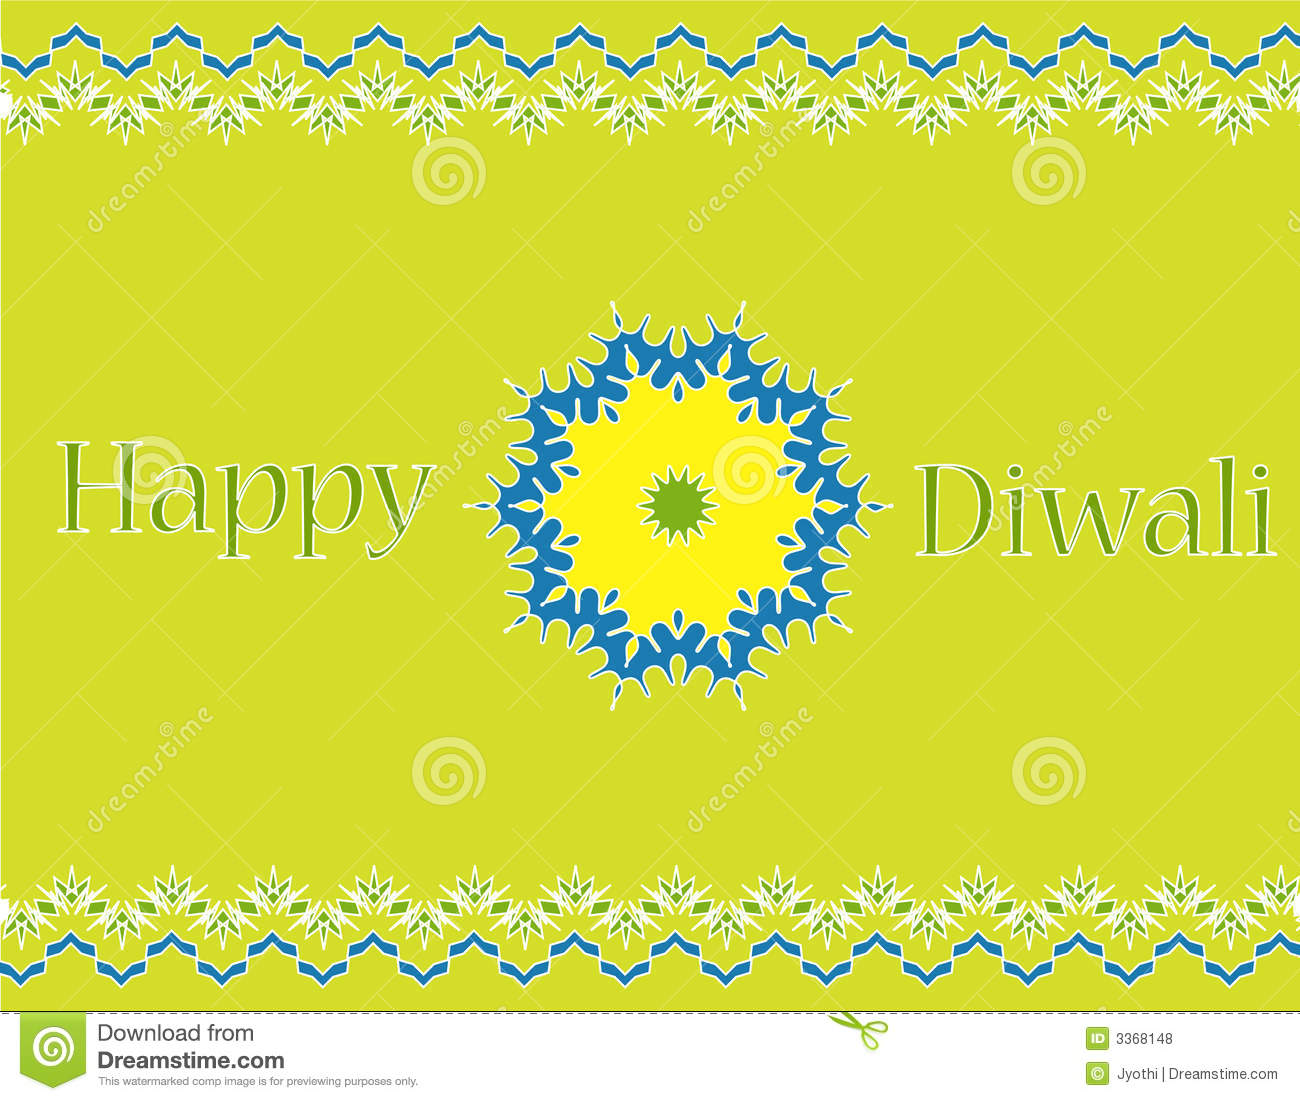 Indian festival Diwali greeting card